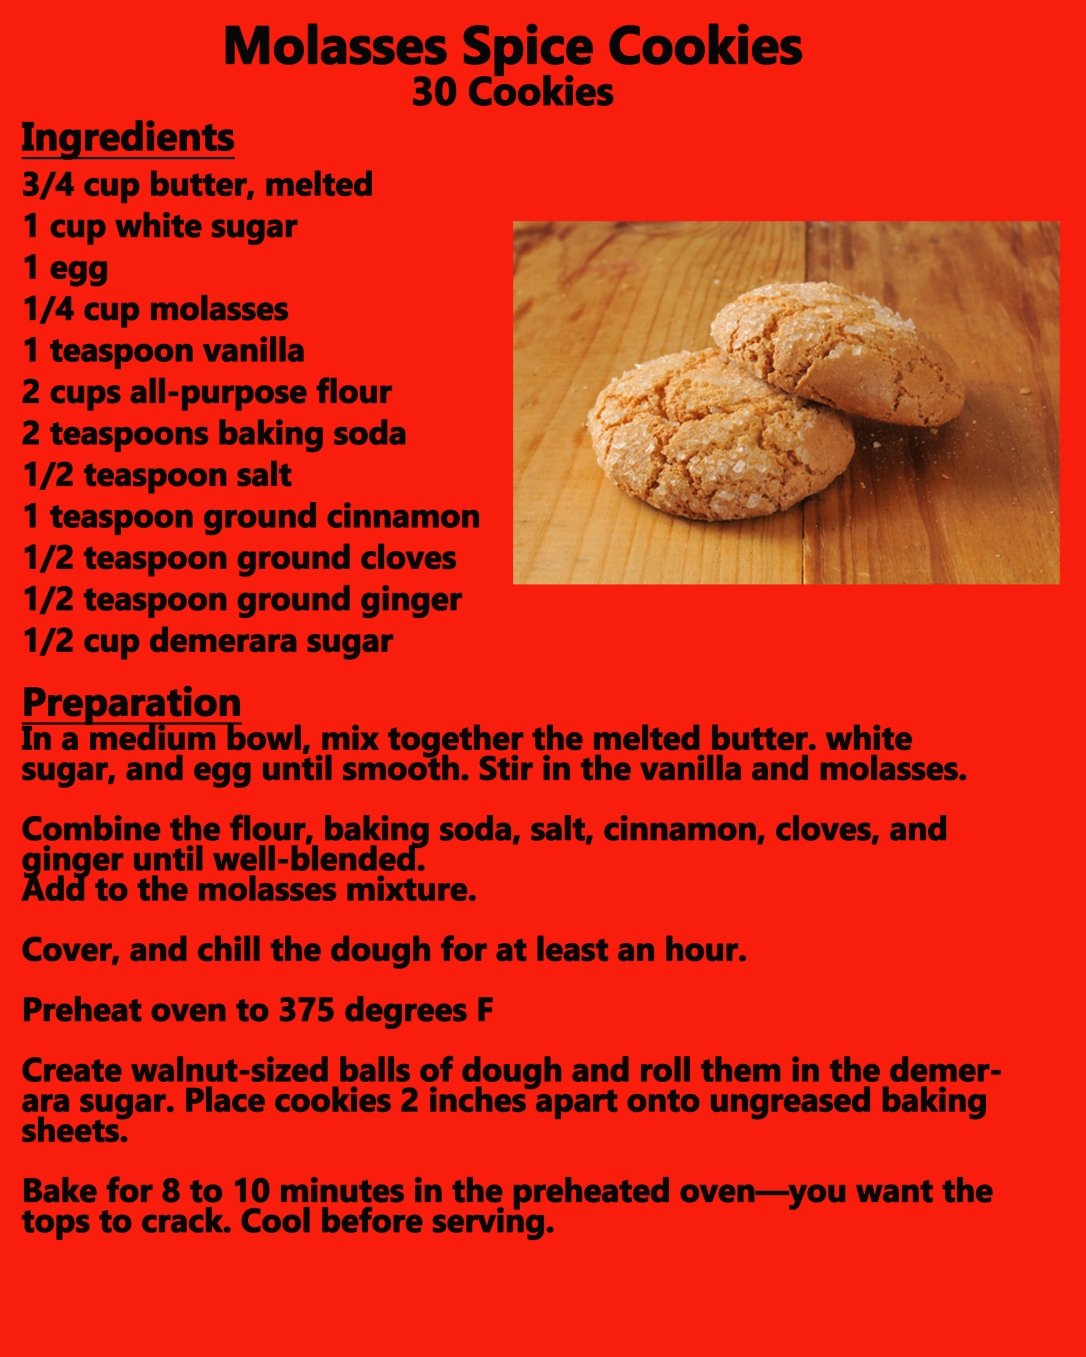 molasses spice cookies recipe